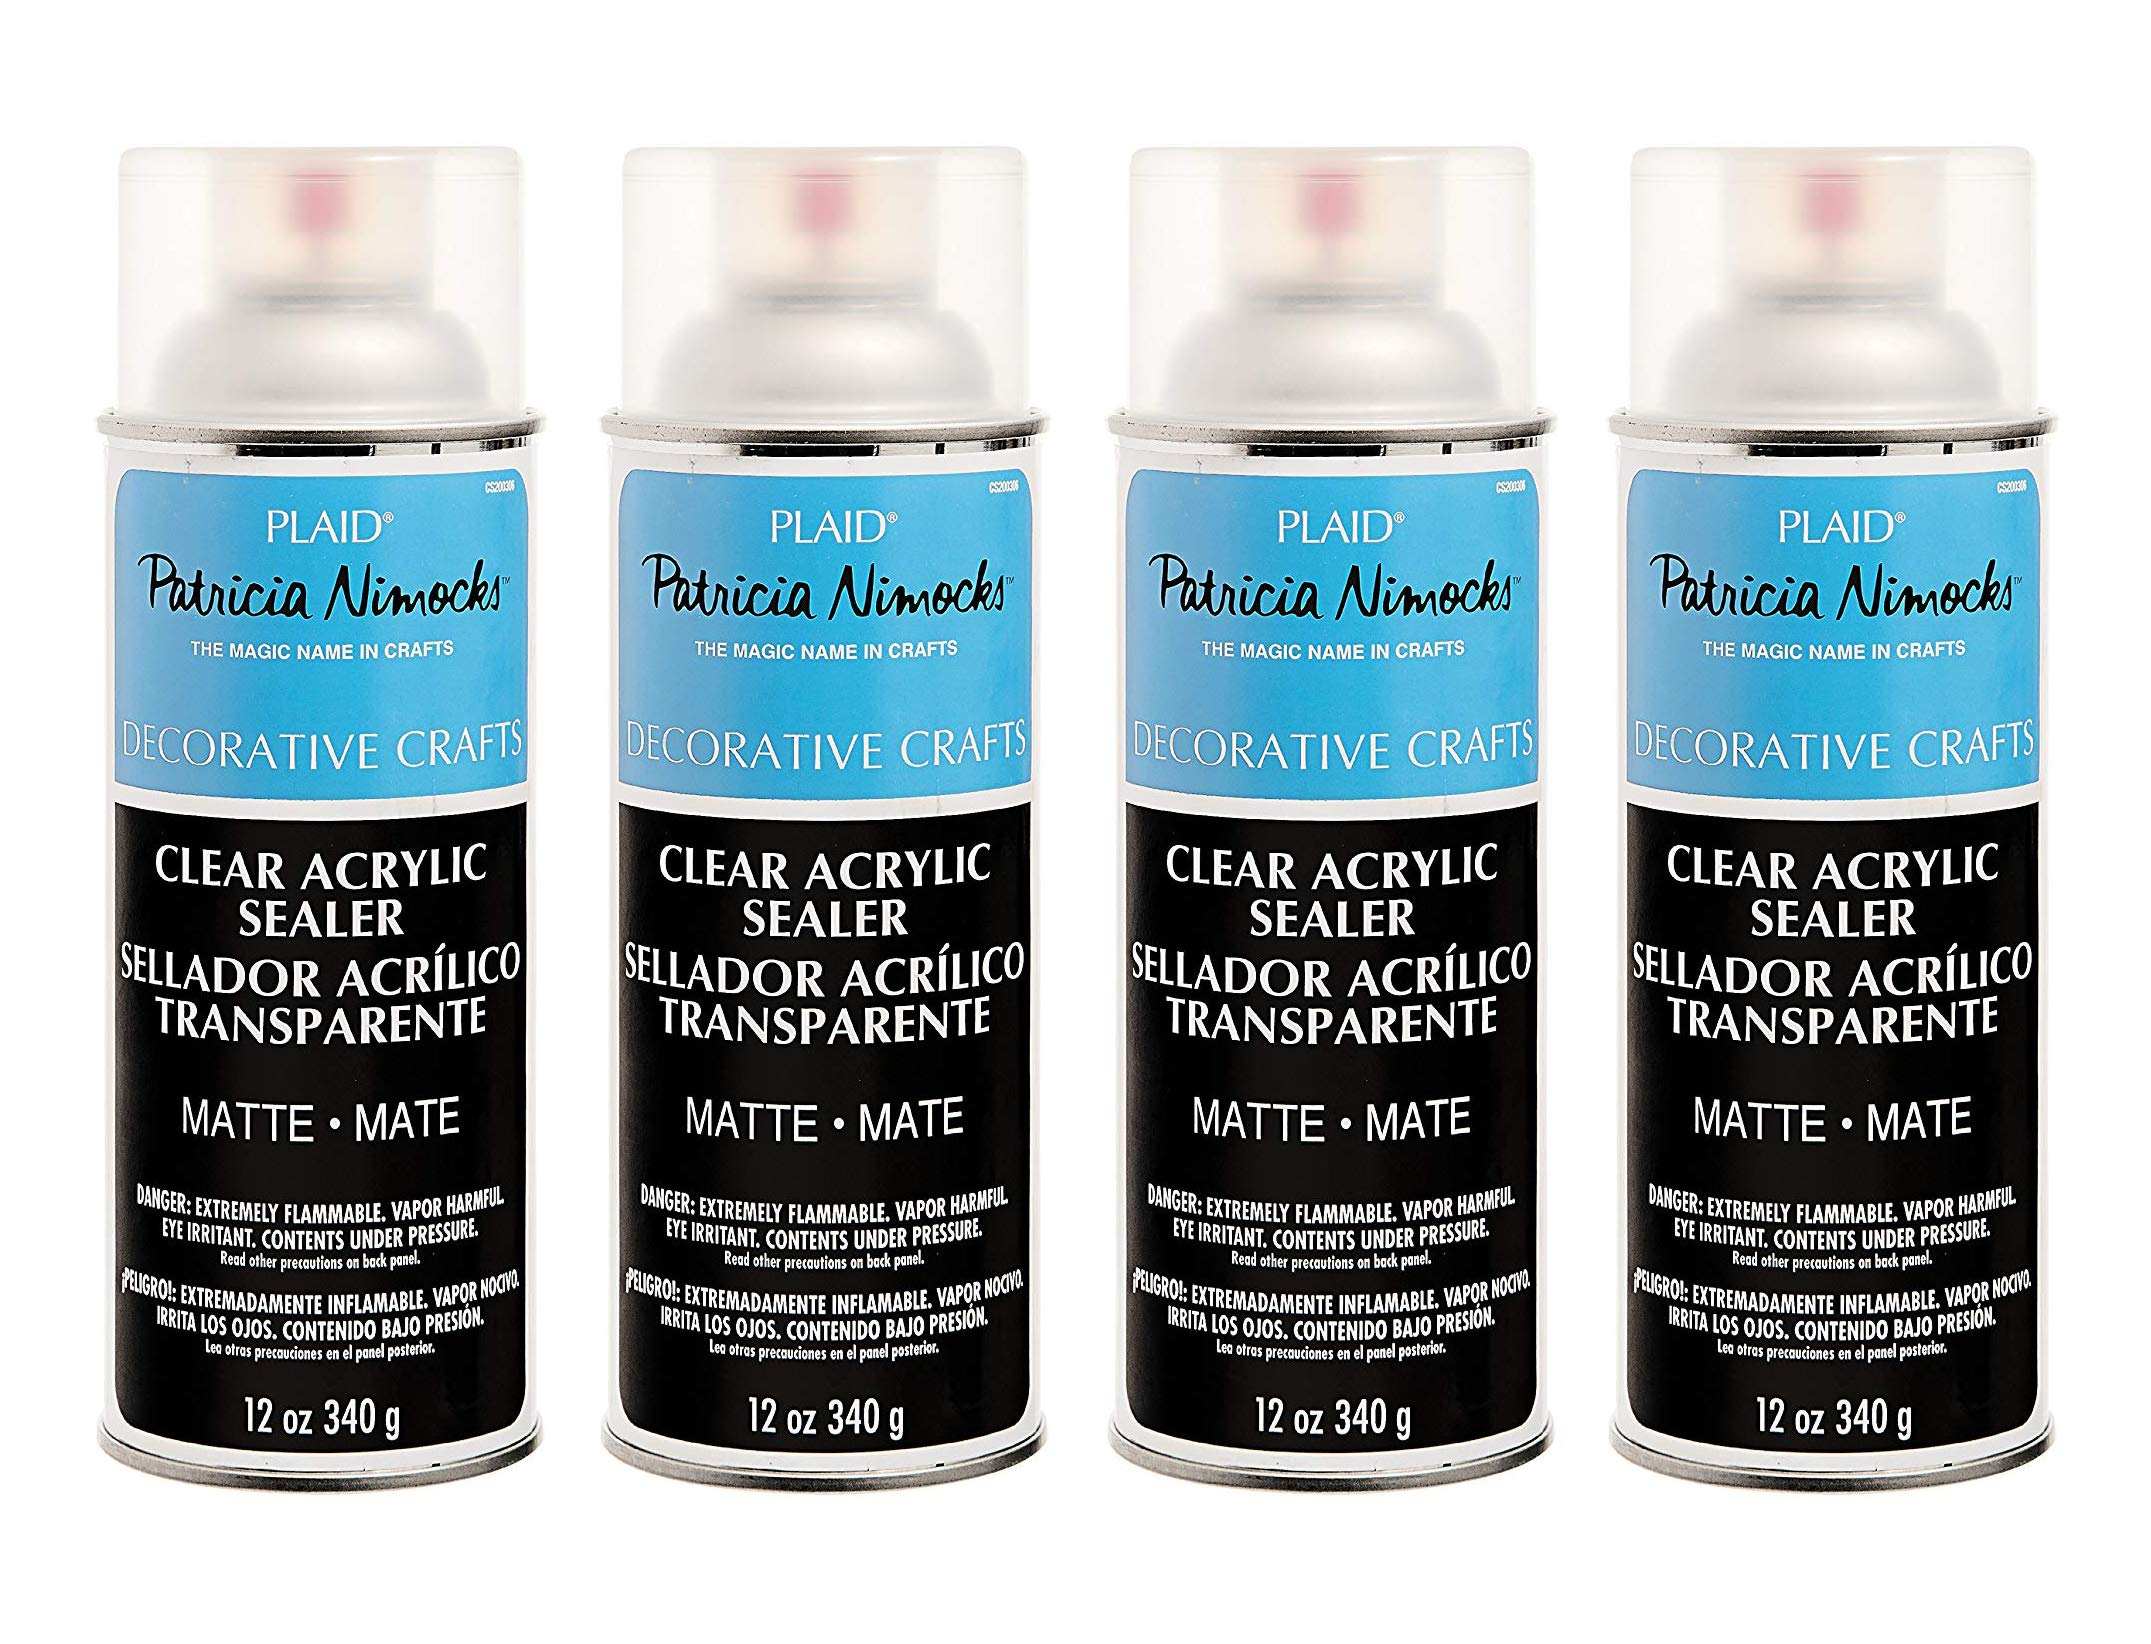 Plaid Patricia Nimocks Clear Acrylic Sealers (12-Ounce), CS200306 Matte (Fоur Расk) by Plaid Enterprises, Inc.